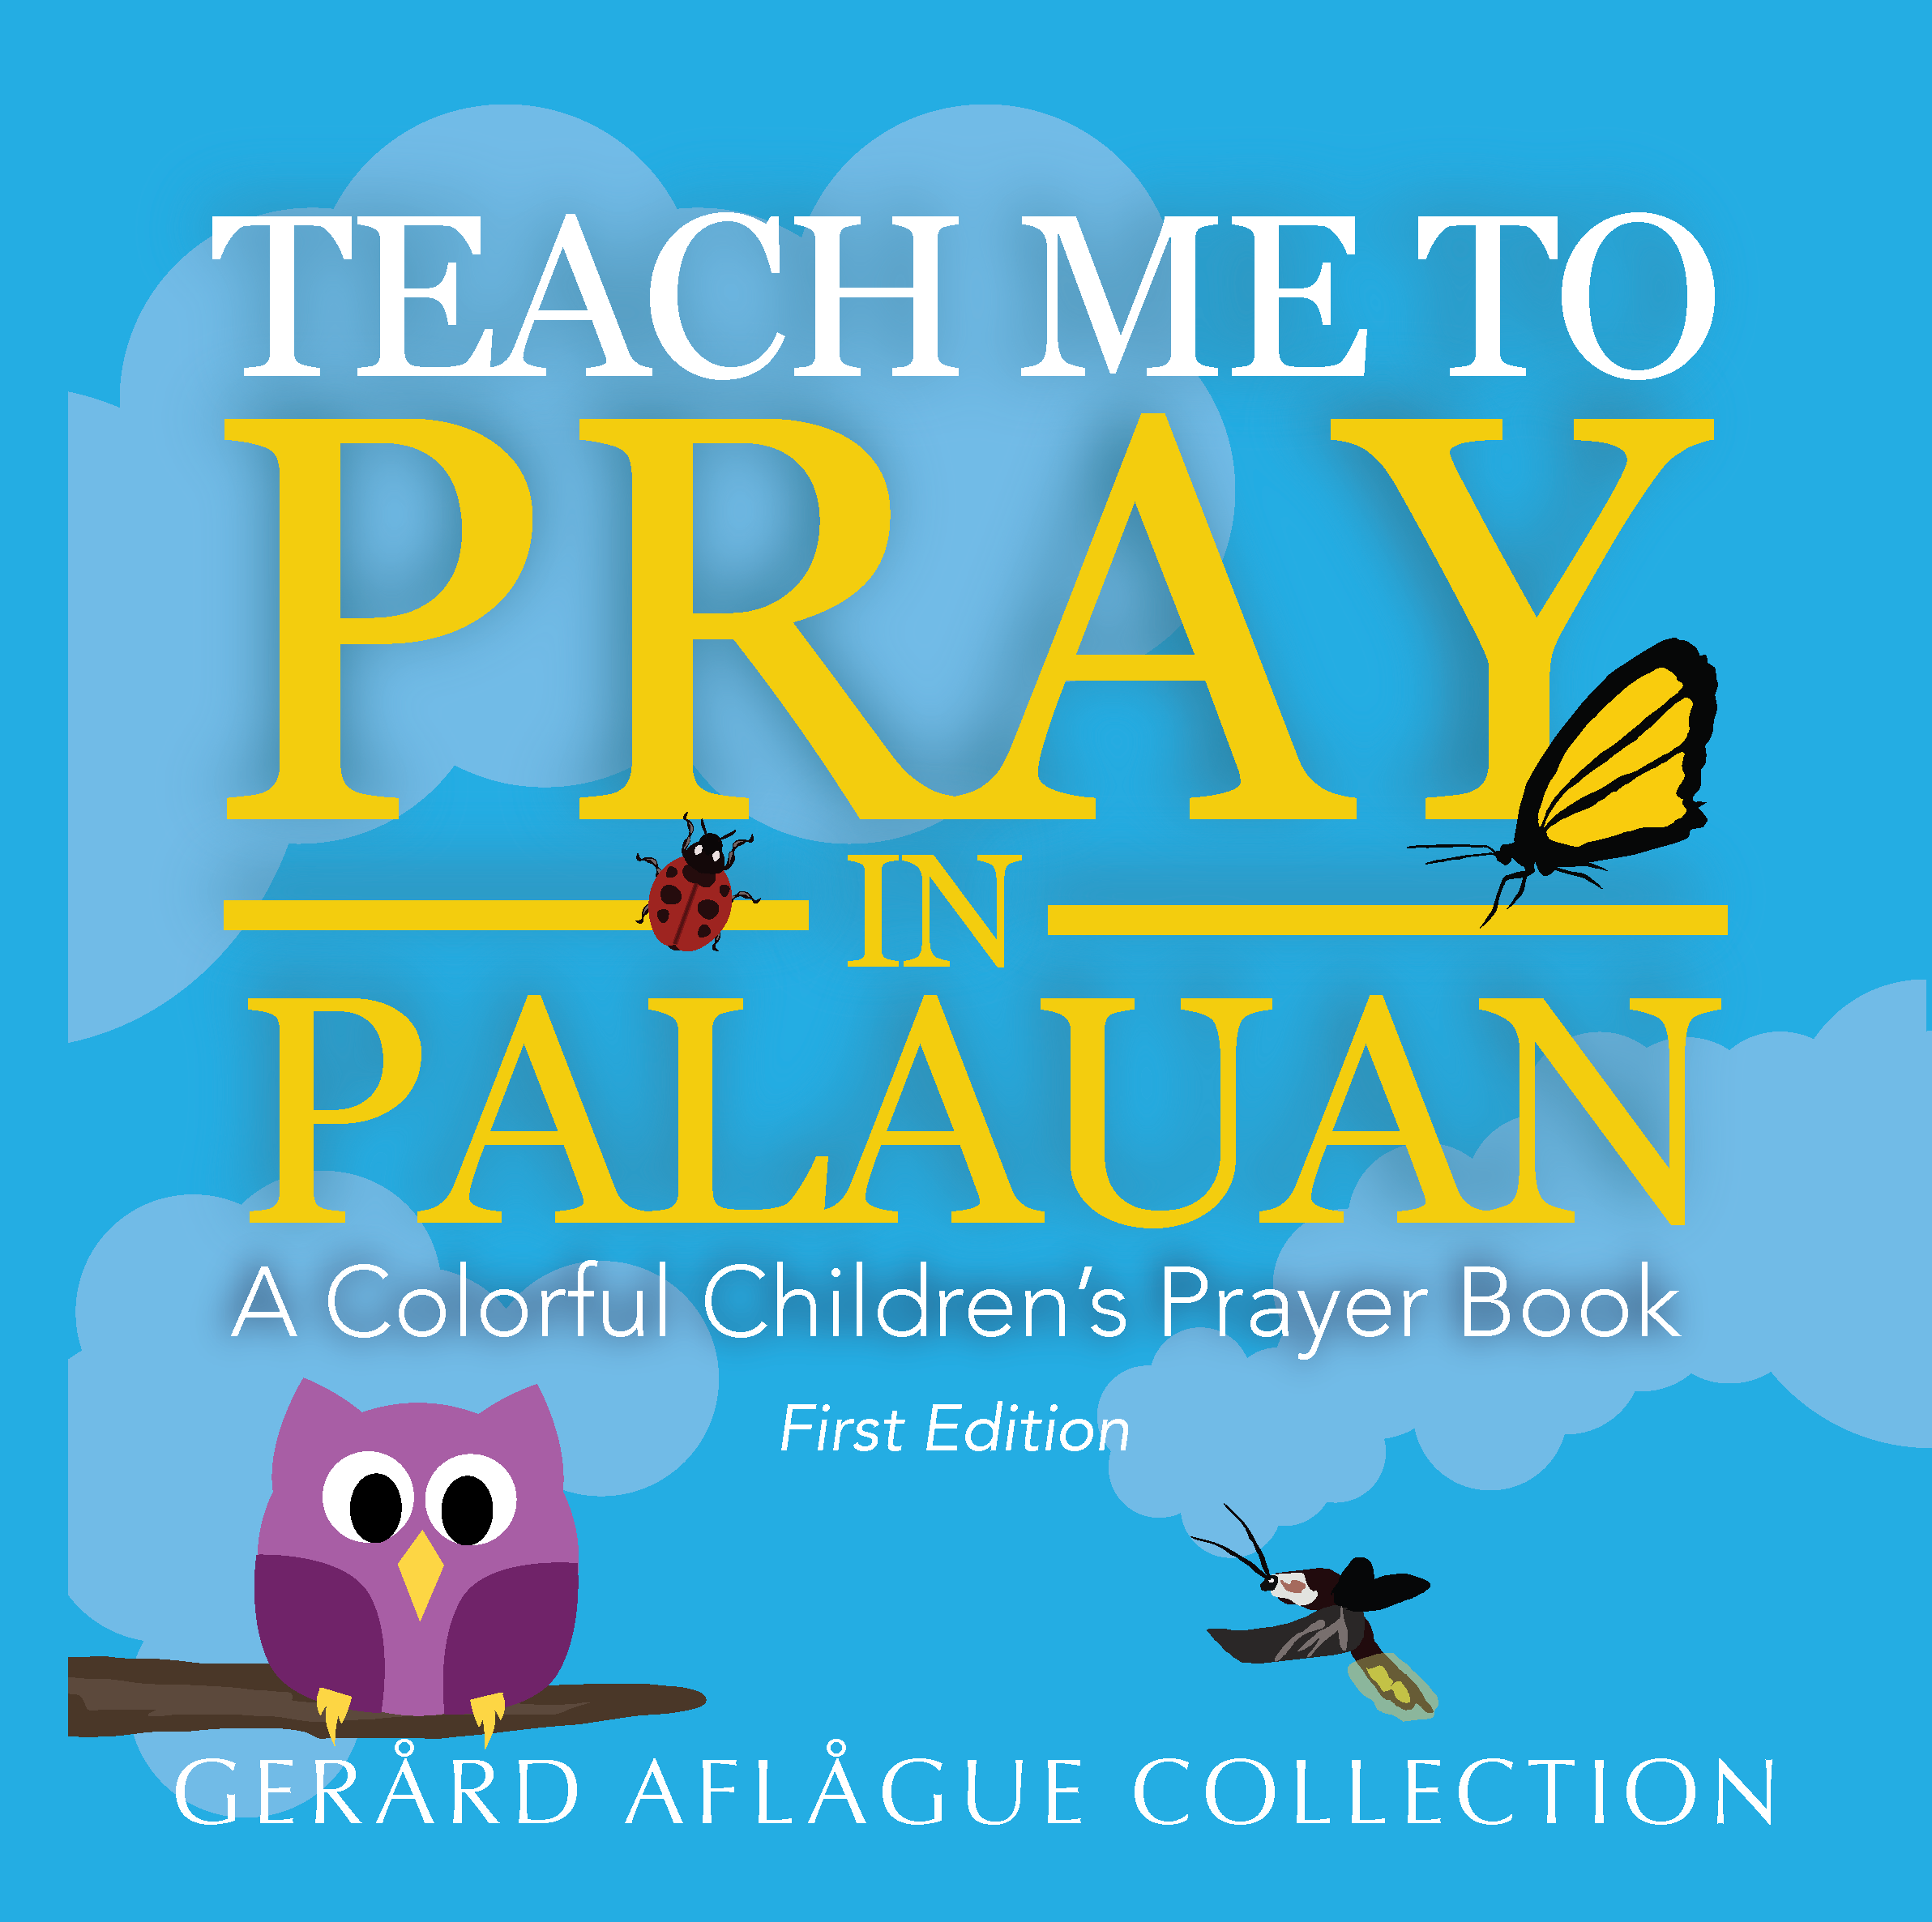 teach-me-to-pray-in-palauan-cover-front